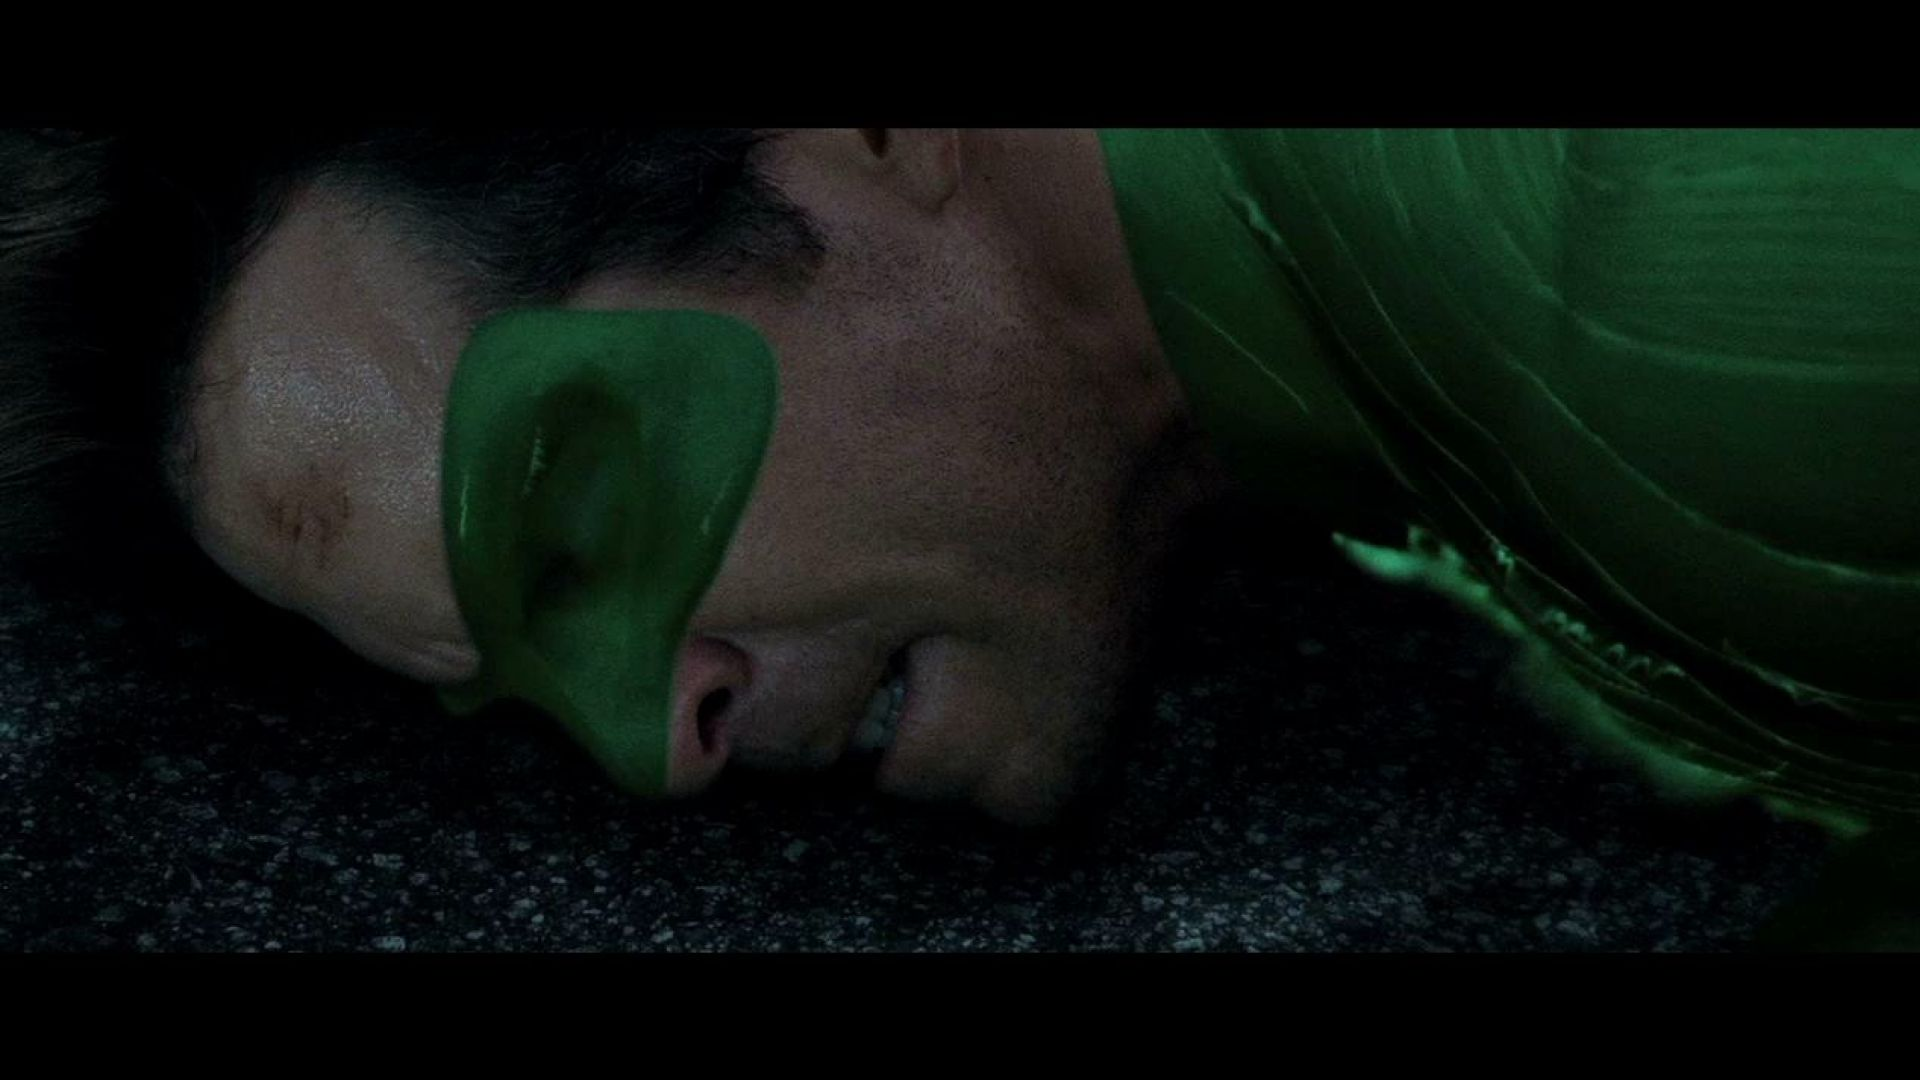 Green Lantern fights Parallax and tries to protect the city